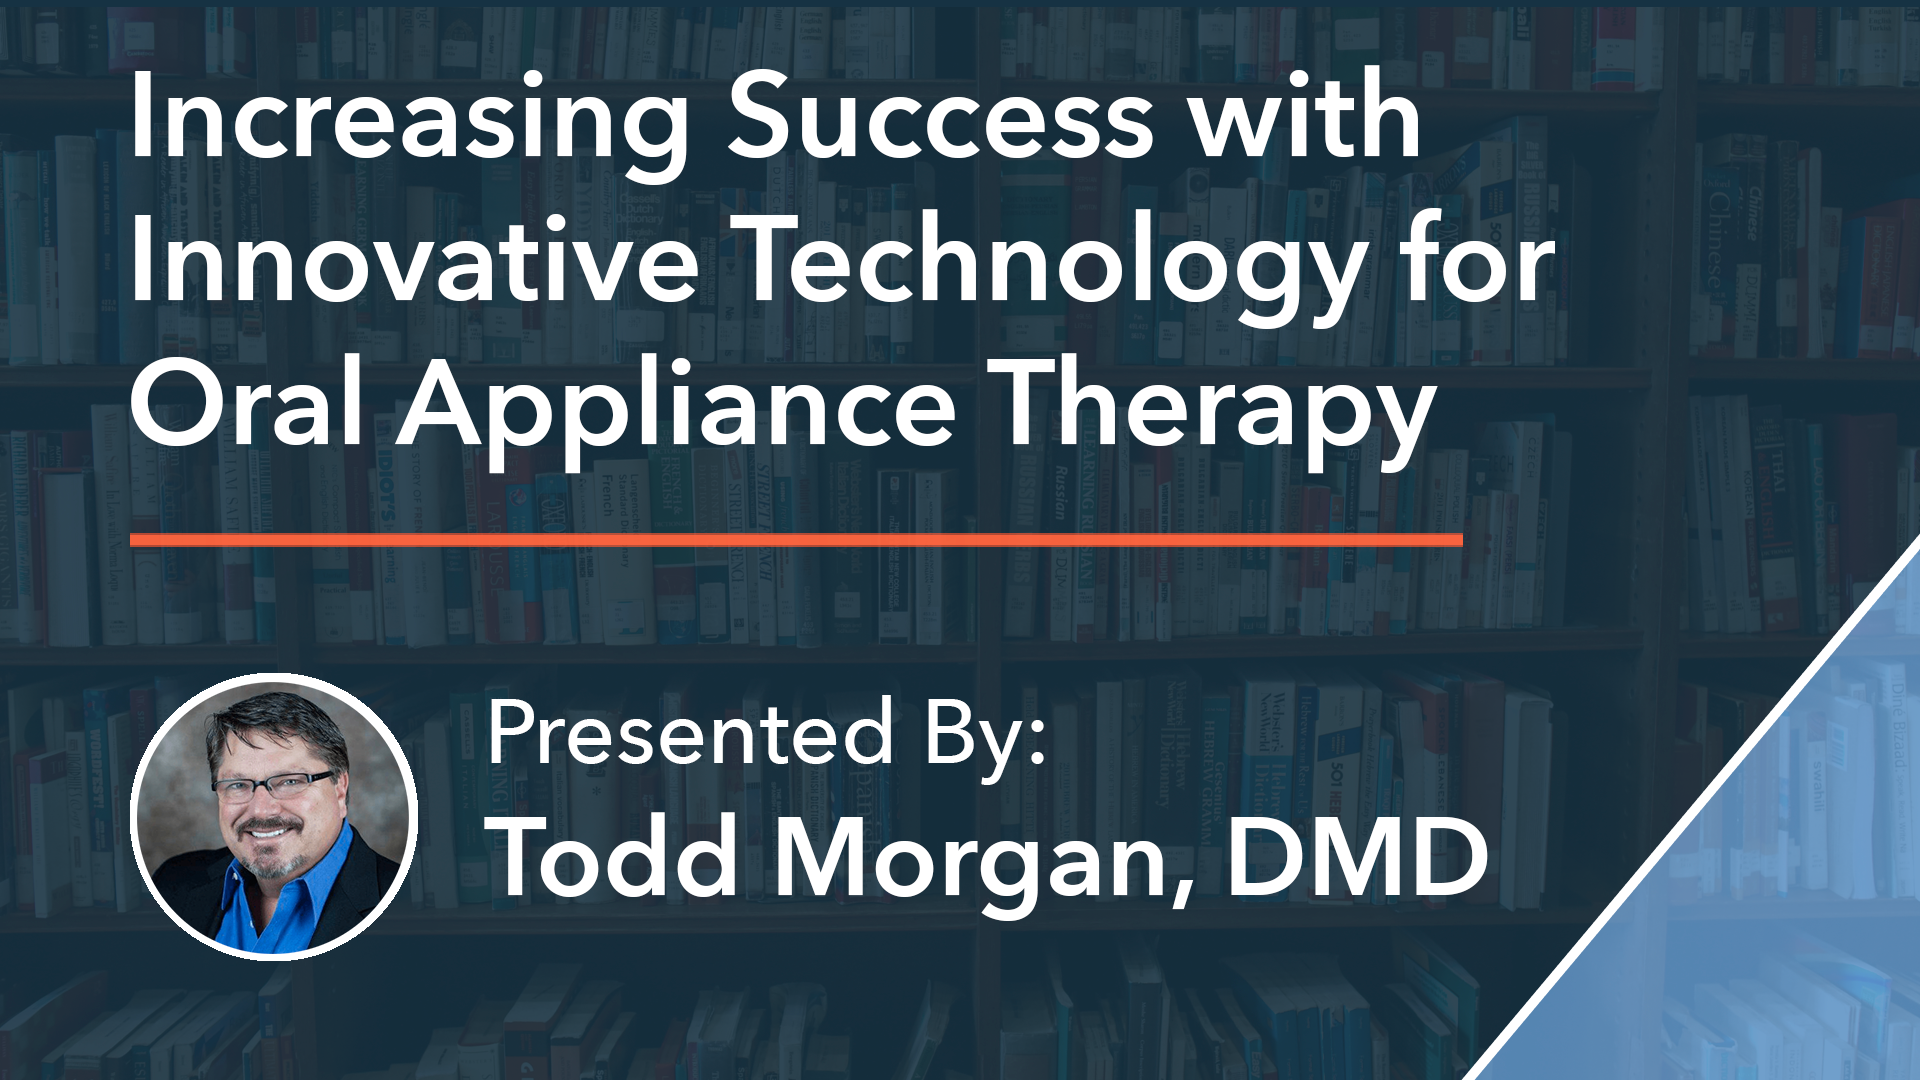 Increasing Success with Innovative Technology for Oral Appliance Therapy Dr Todd Morgan